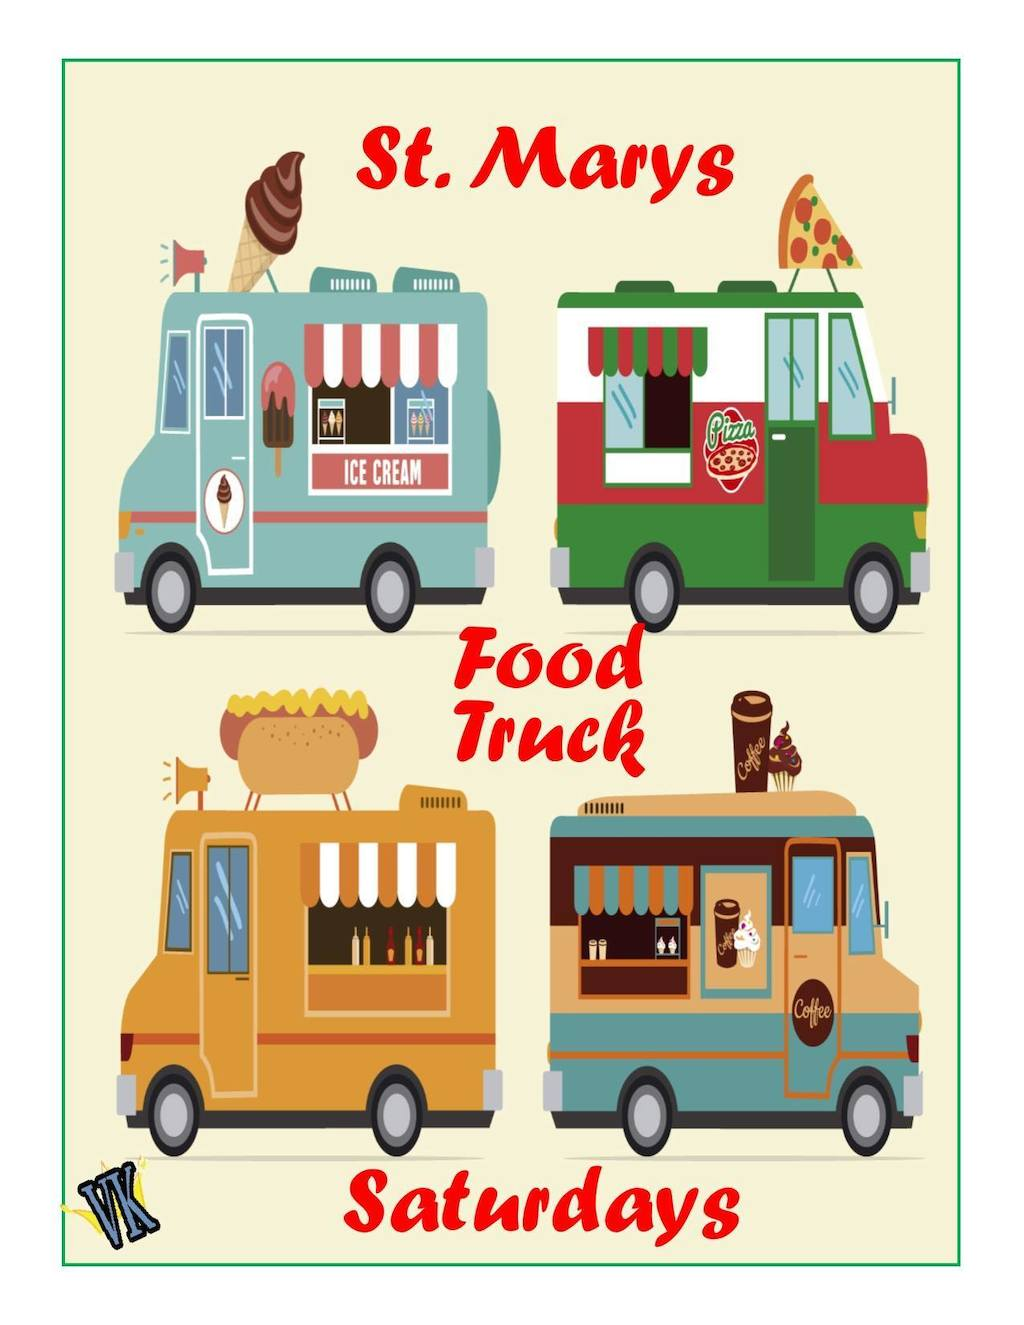 St Marys Food Truck Saturdays